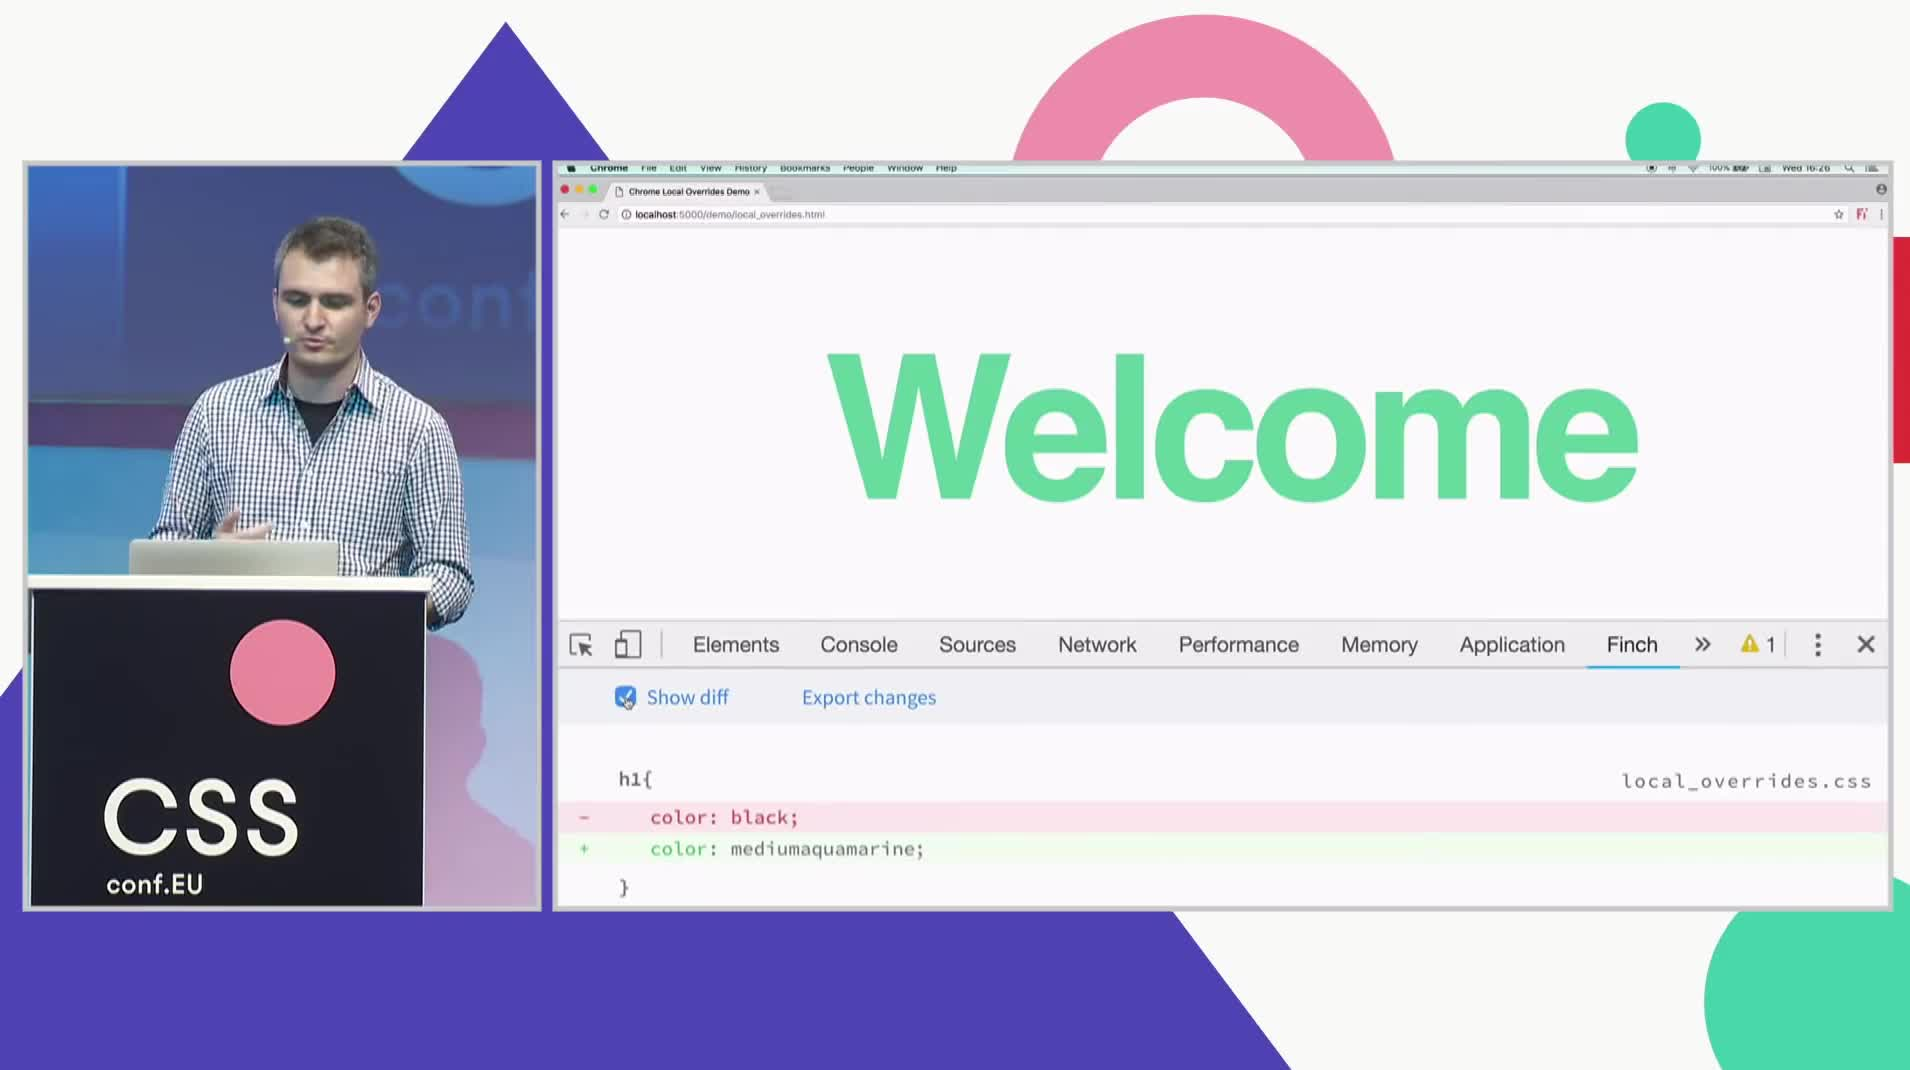 CSSconf EU 2018 | Razvan Caliman: We have DevTools. What about DesignTools?